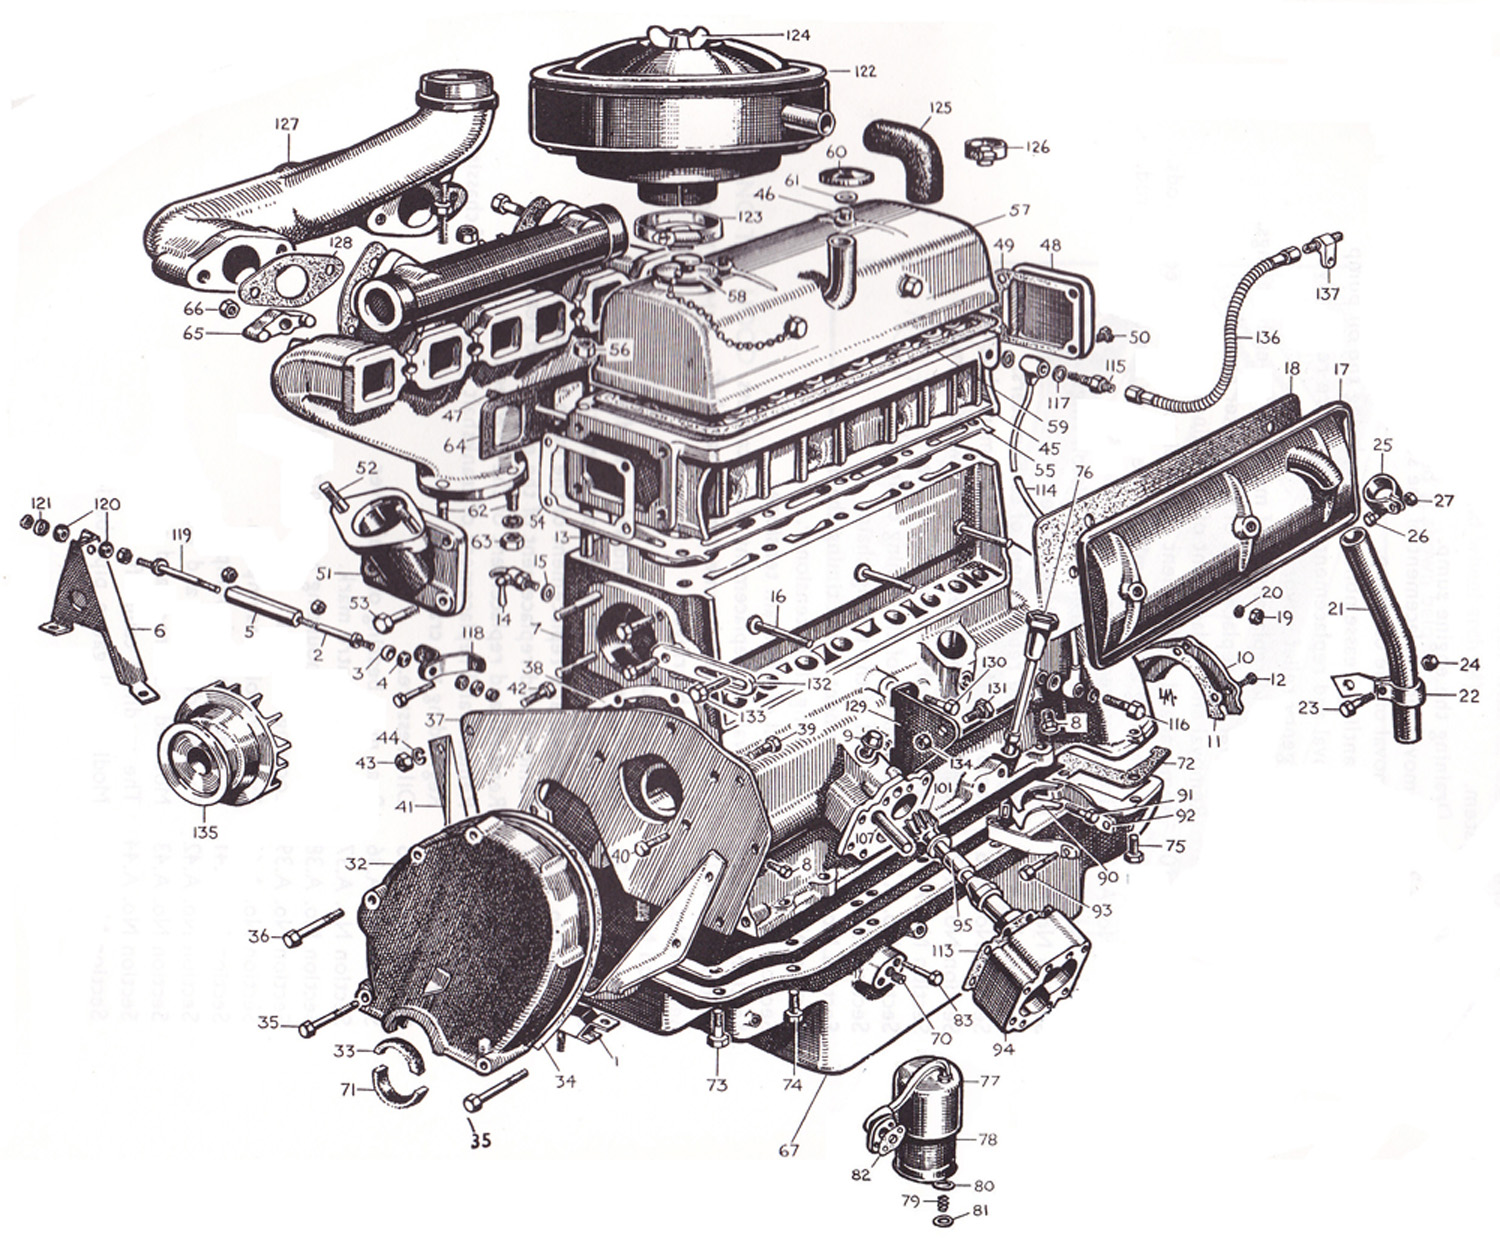 Tractor Engine Parts : Ford diesel tractor parts diagram auto wiring